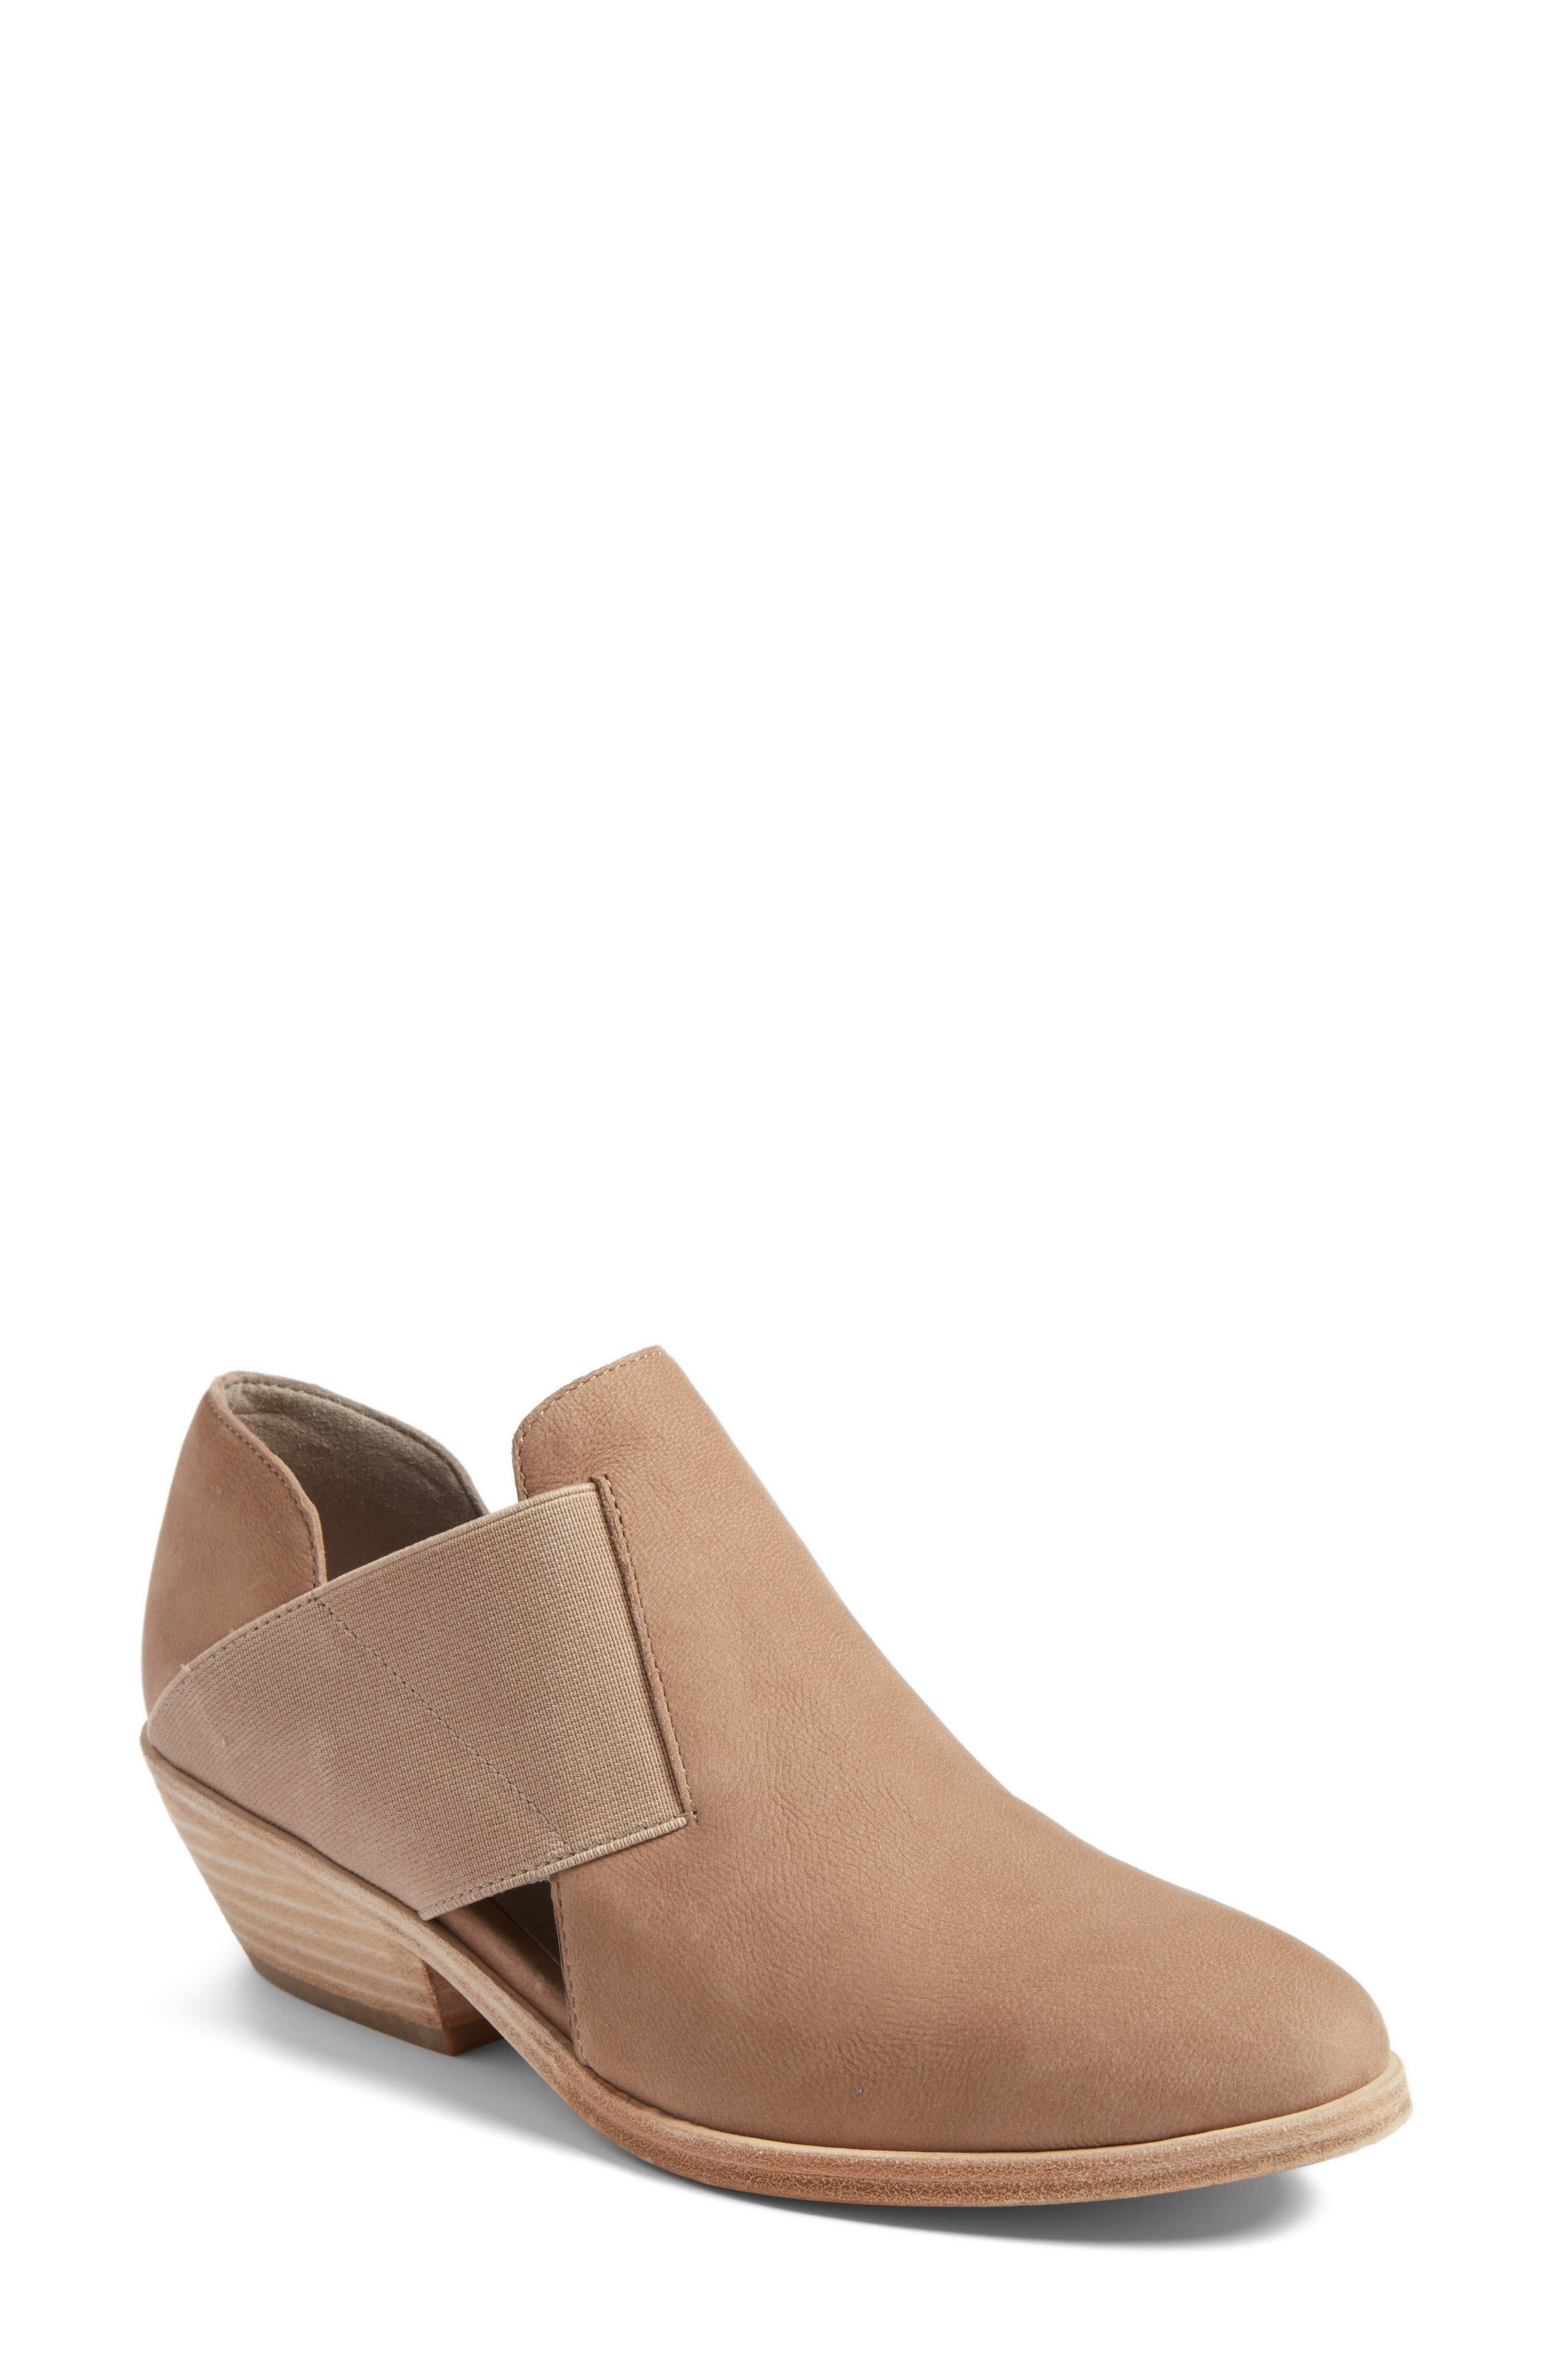 Perry Bootie,                         Main,                         color, Earth Nubuck